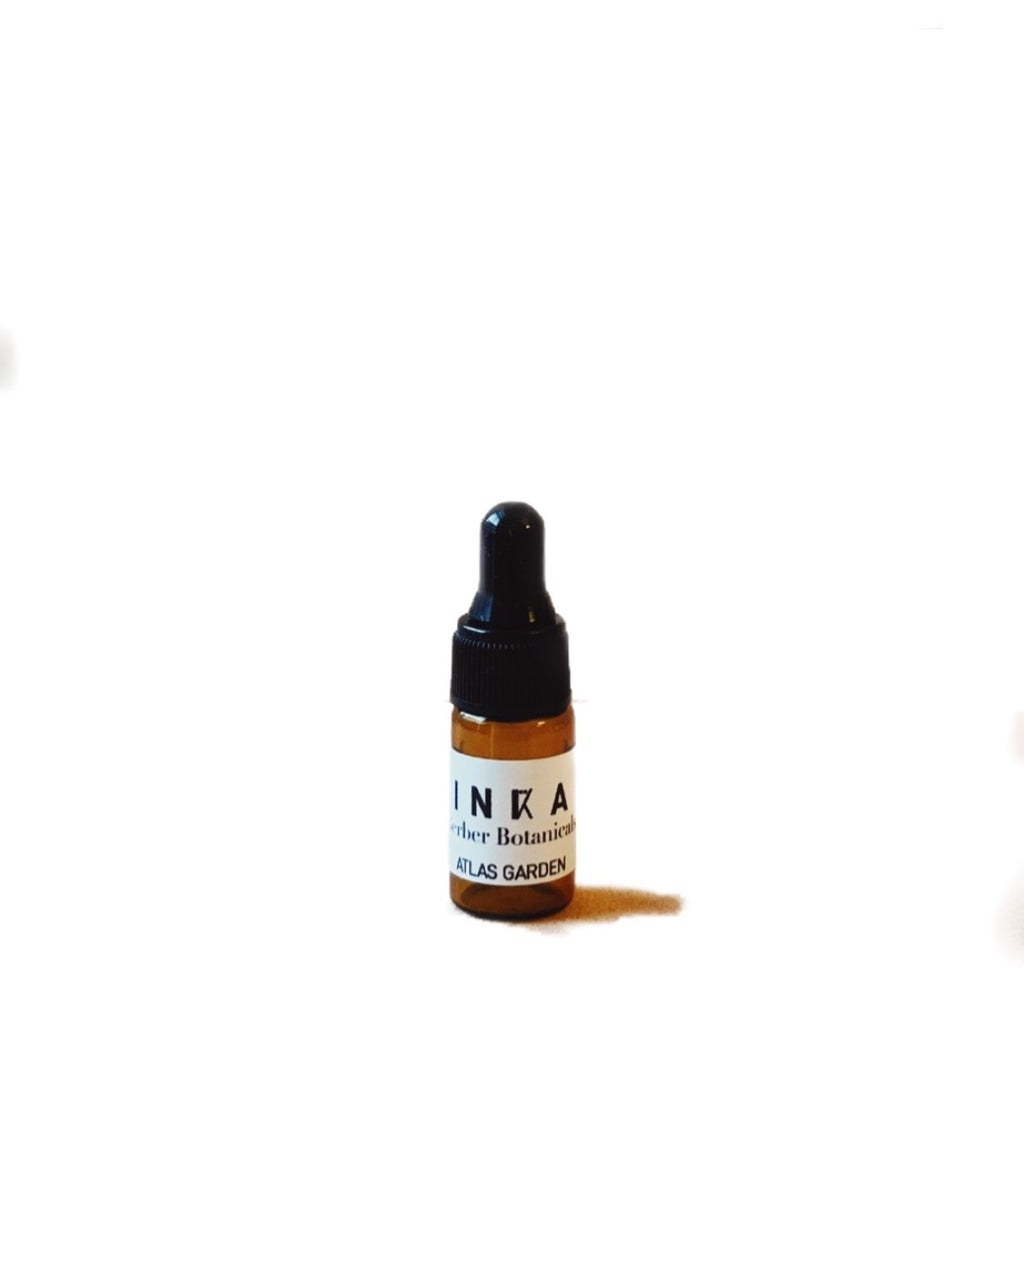 Amber sample bottle of the Atlas garden night oil